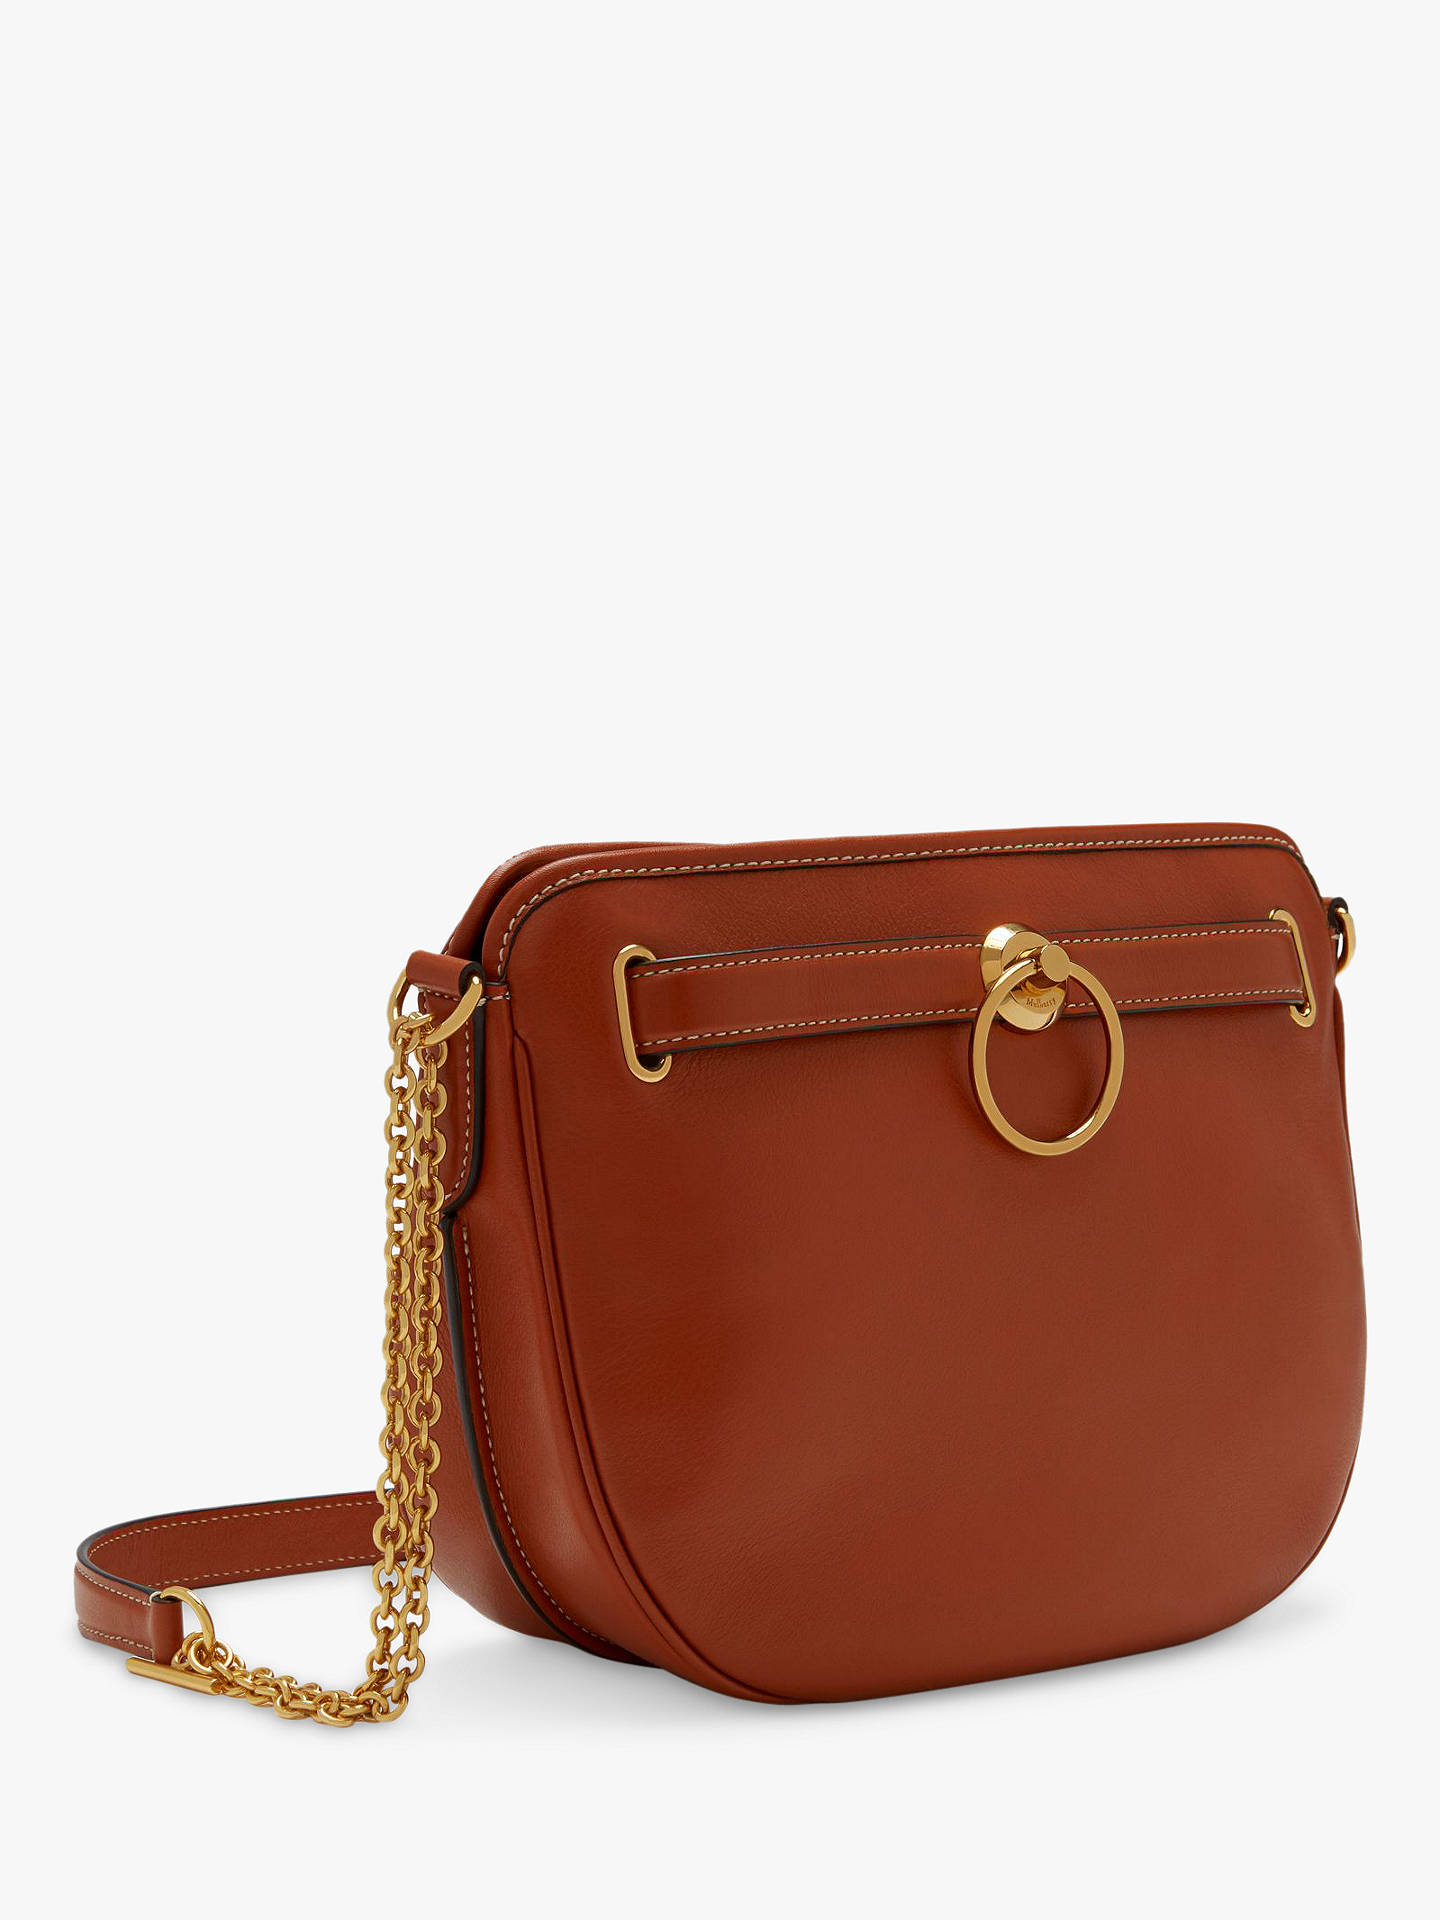 fd7a2daf2ff ... Buy Mulberry Brockwell Silky Calf's Leather Satchel Bag, Red Clay  Online at johnlewis.com